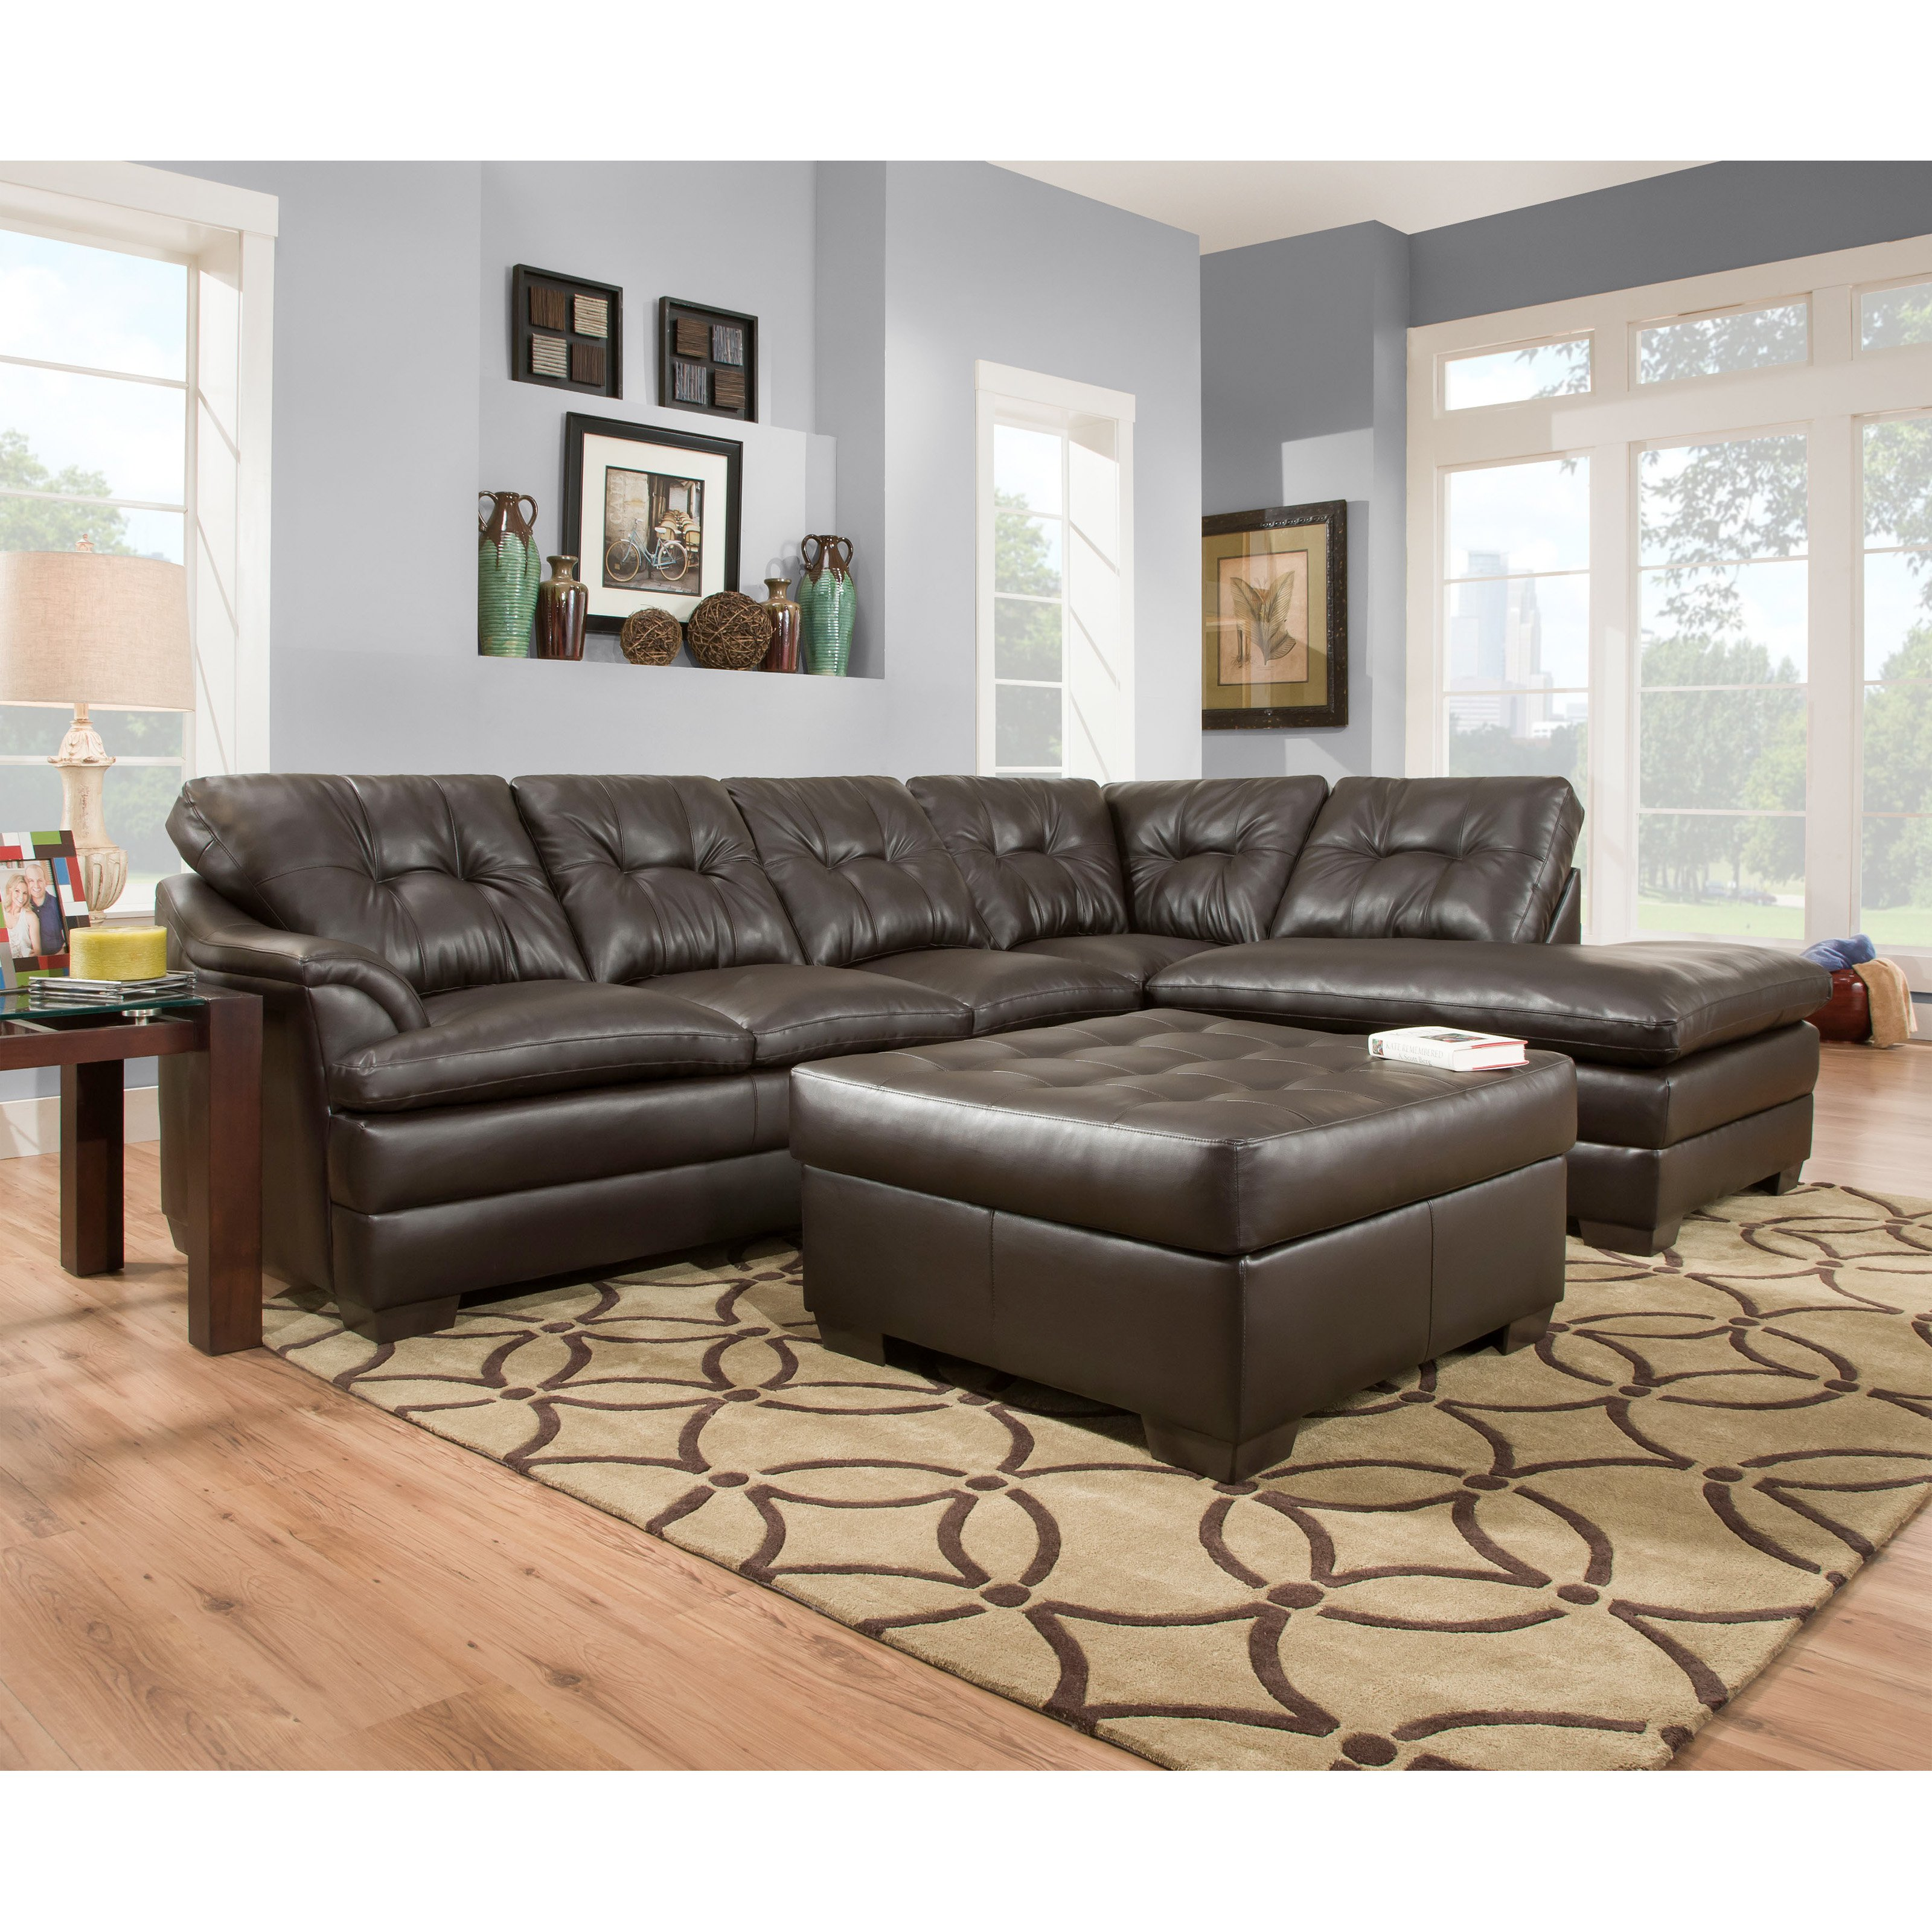 upholstery garden shipping simmons godiva today bernie sectional home overstock product free